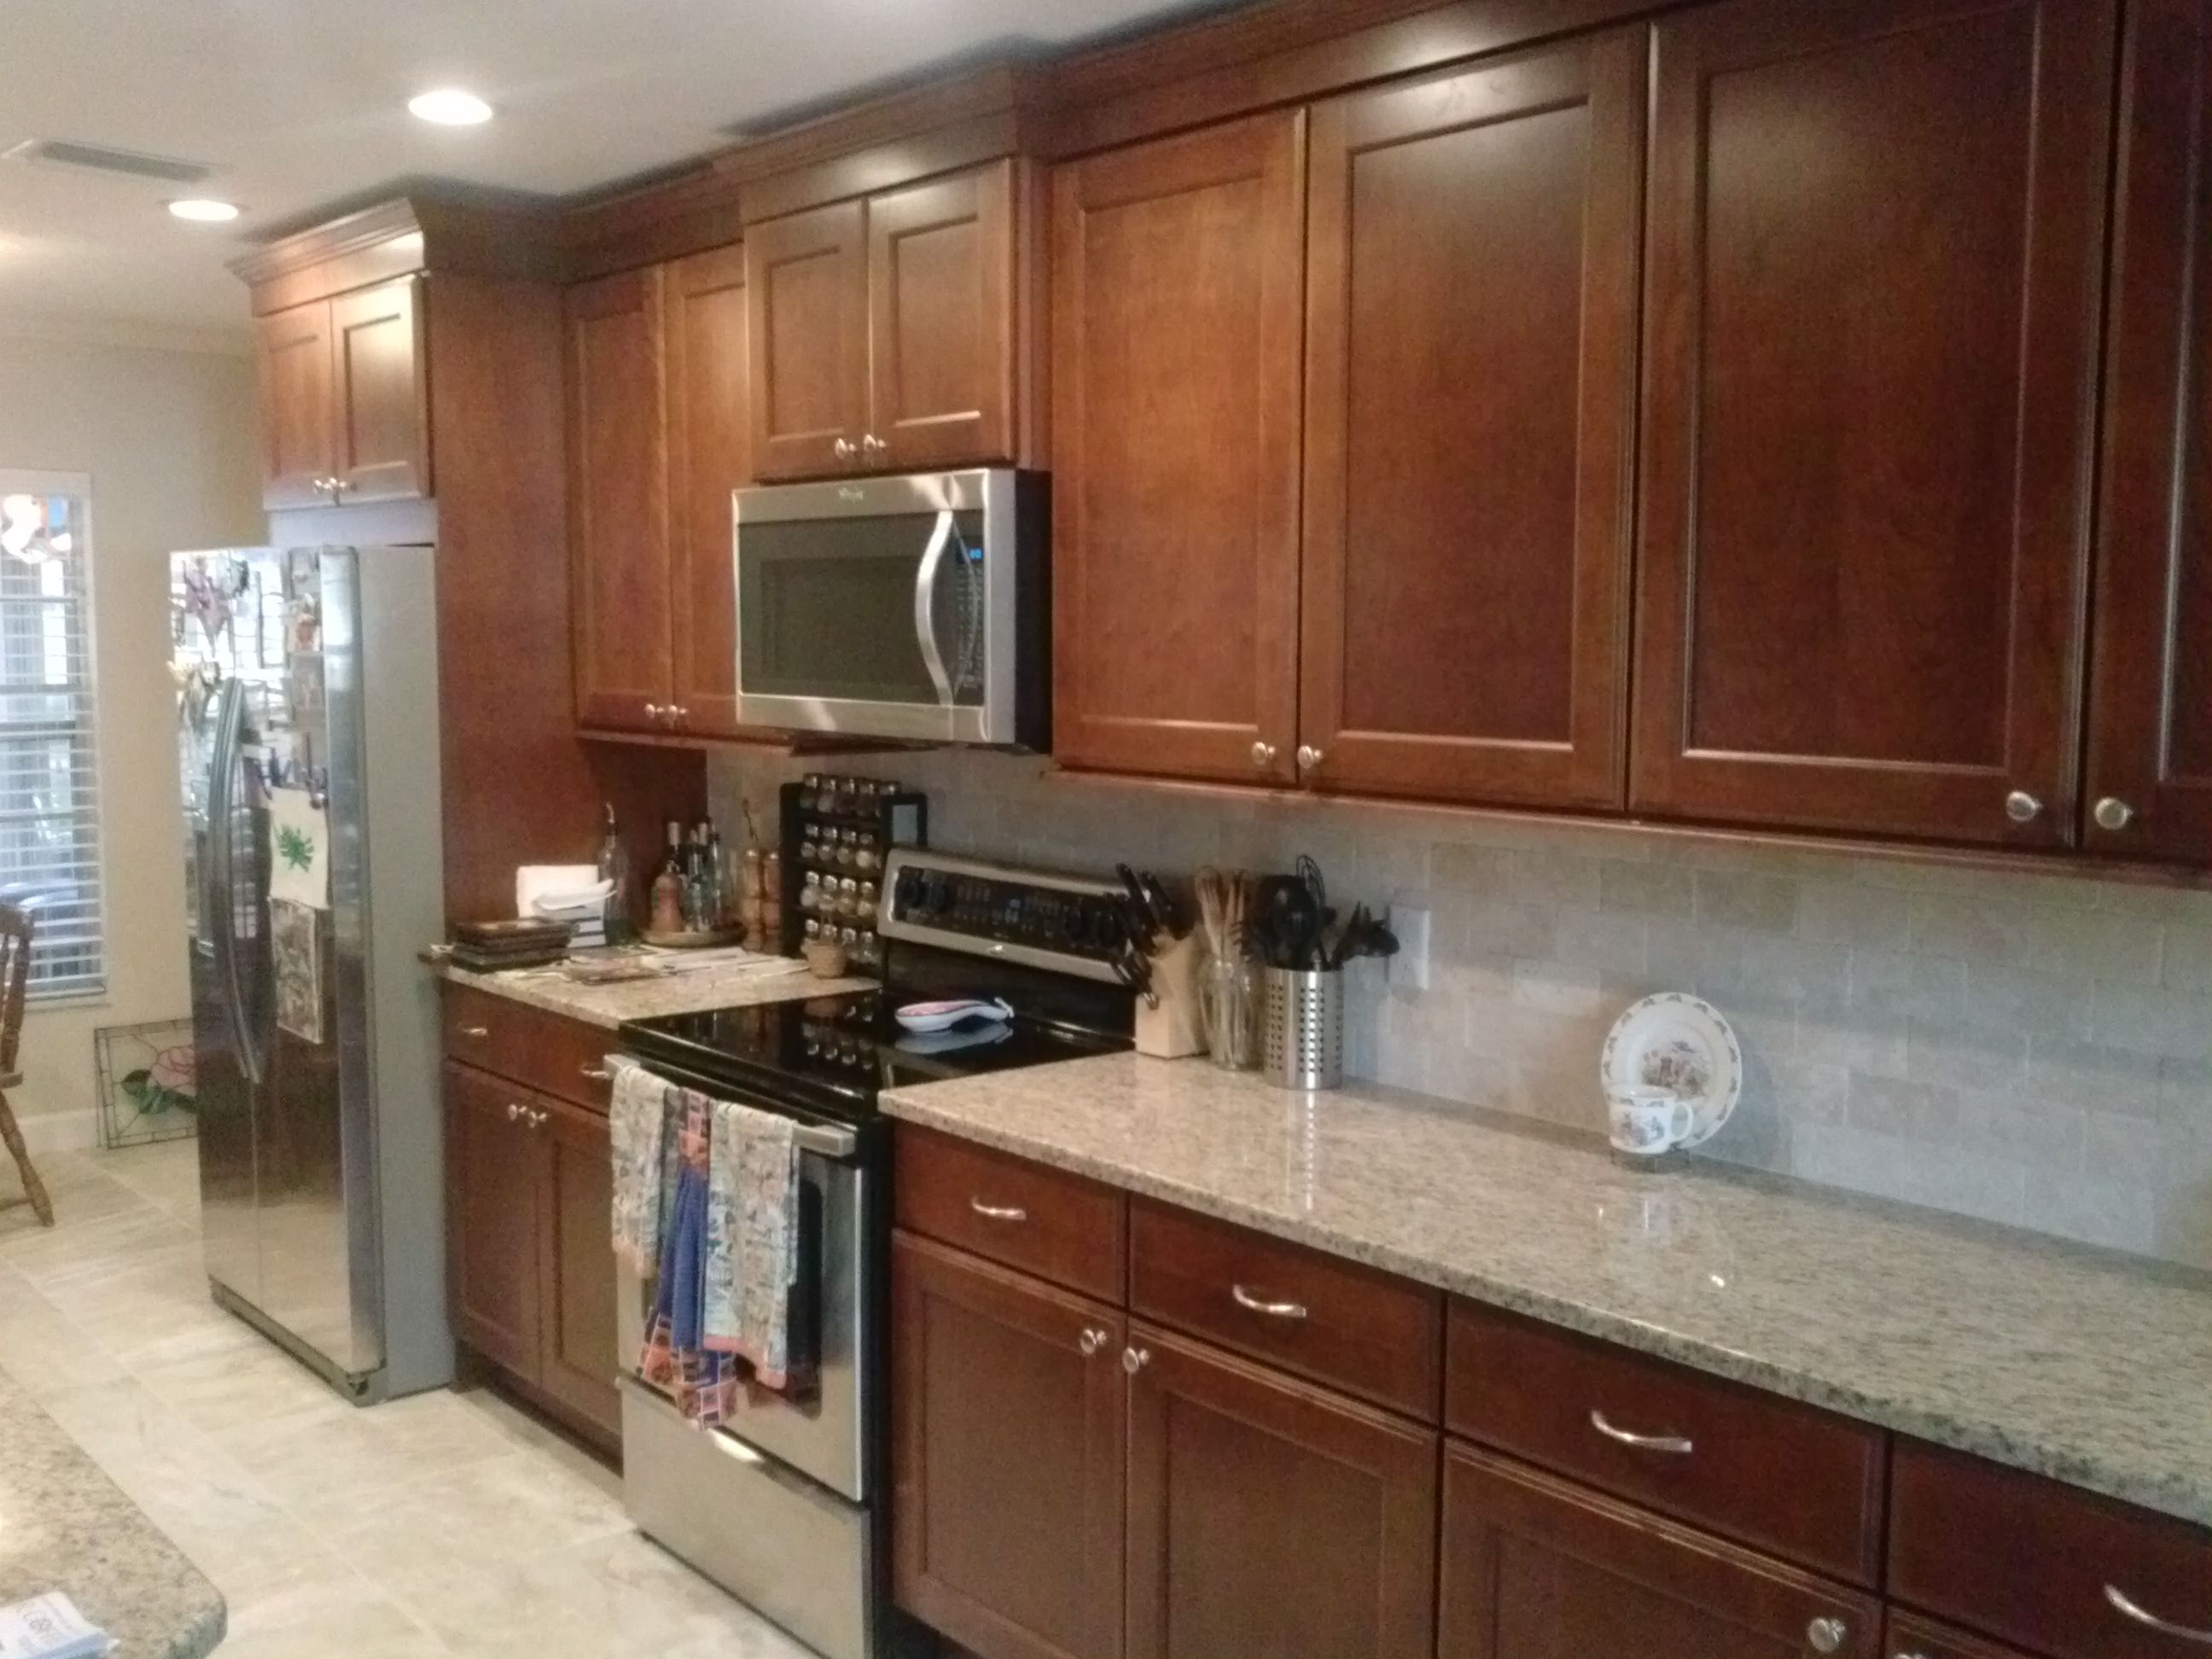 Tile Stone Kitchen Remodels In Tampa Clearwater St Petersburg Kitchen Design Open Kitchen Remodel Kitchen